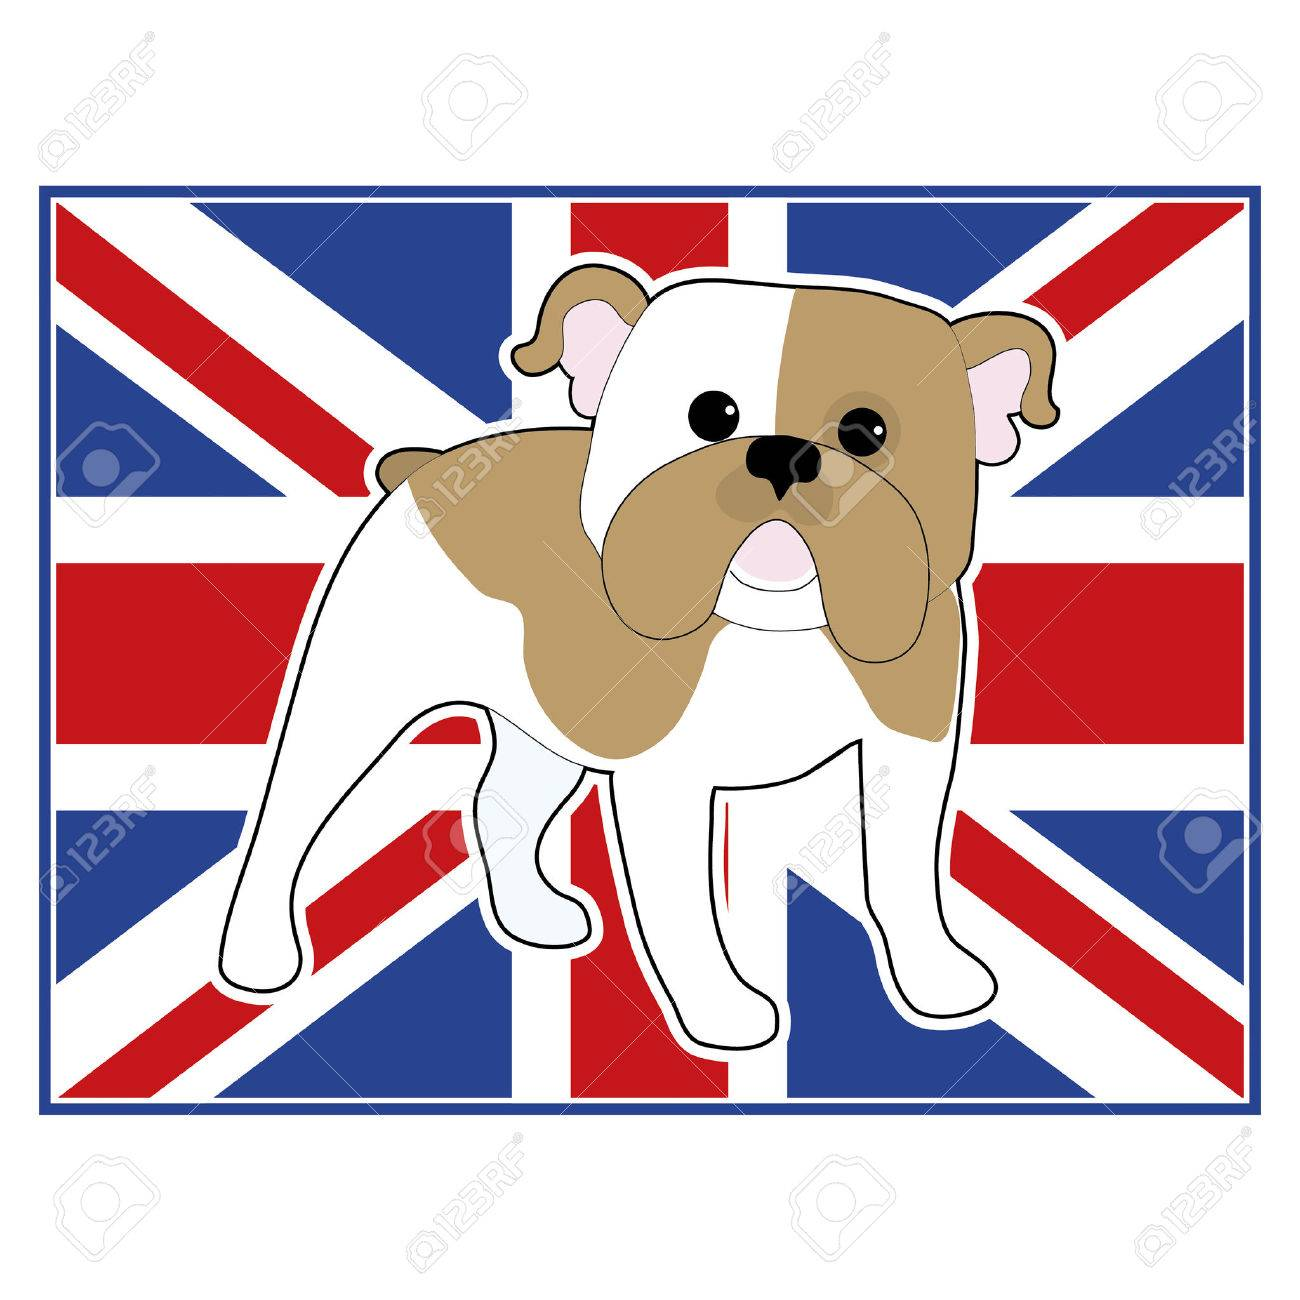 A cartoon illustration of an English Bulldog with a British flag in the background - 29686713